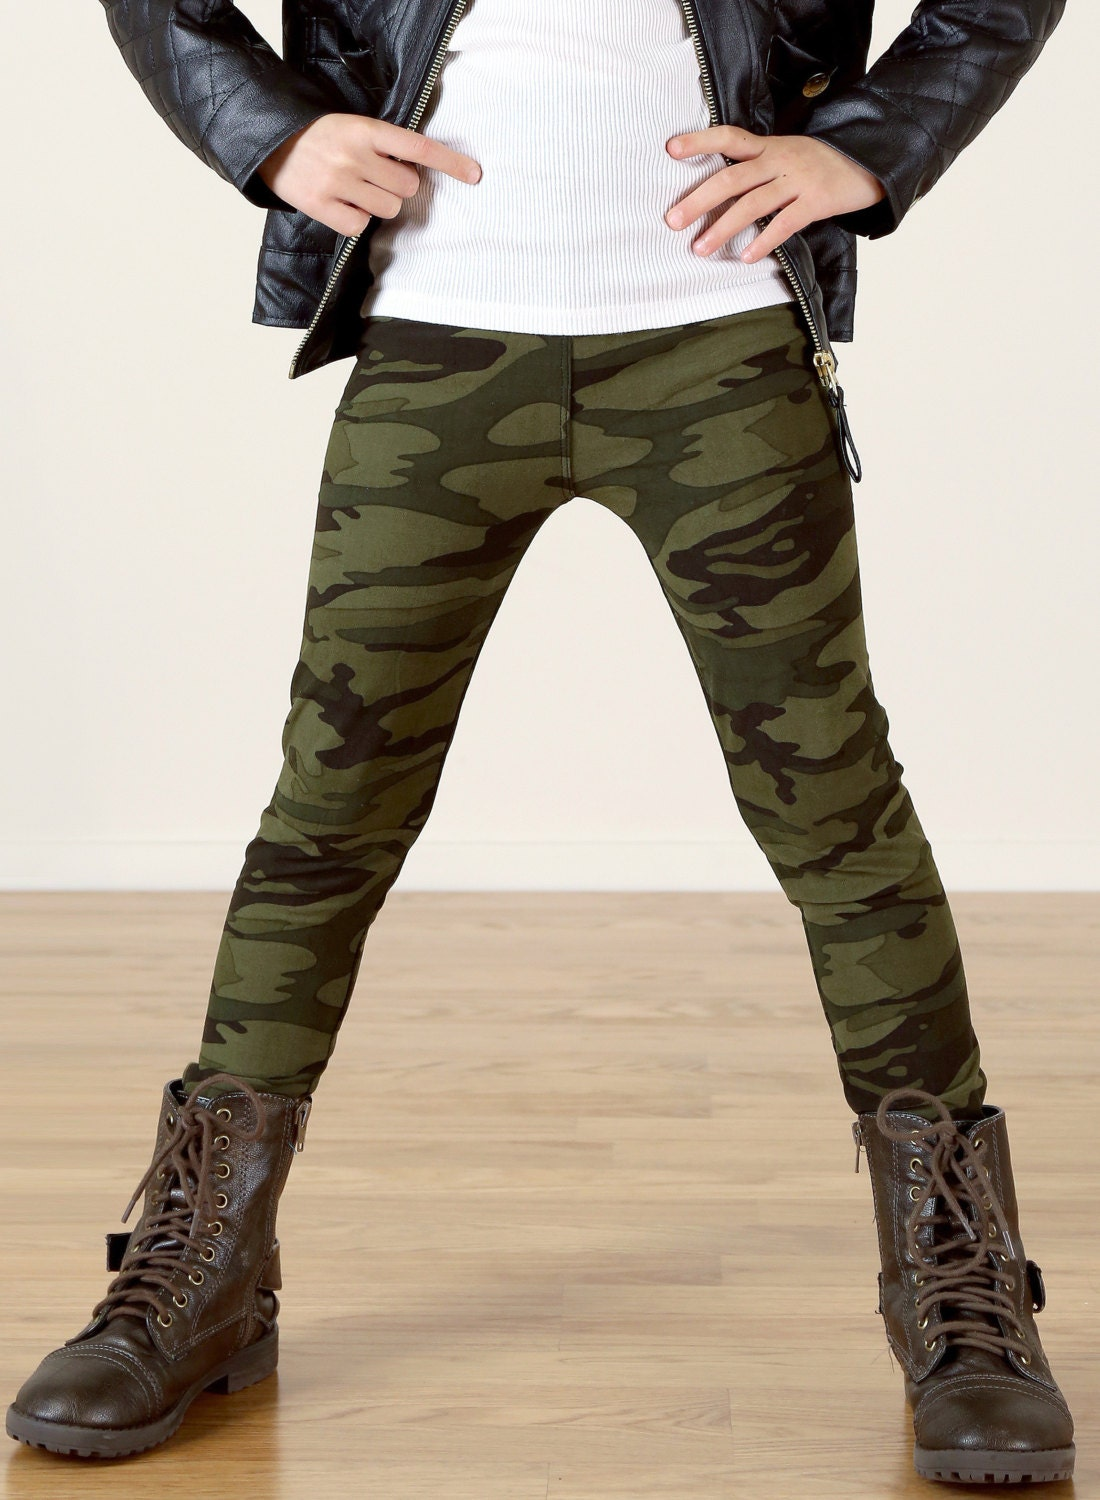 Girls/Kids Army Camo Printed Leggings for Riot Grrrls Punk and Goth Kids